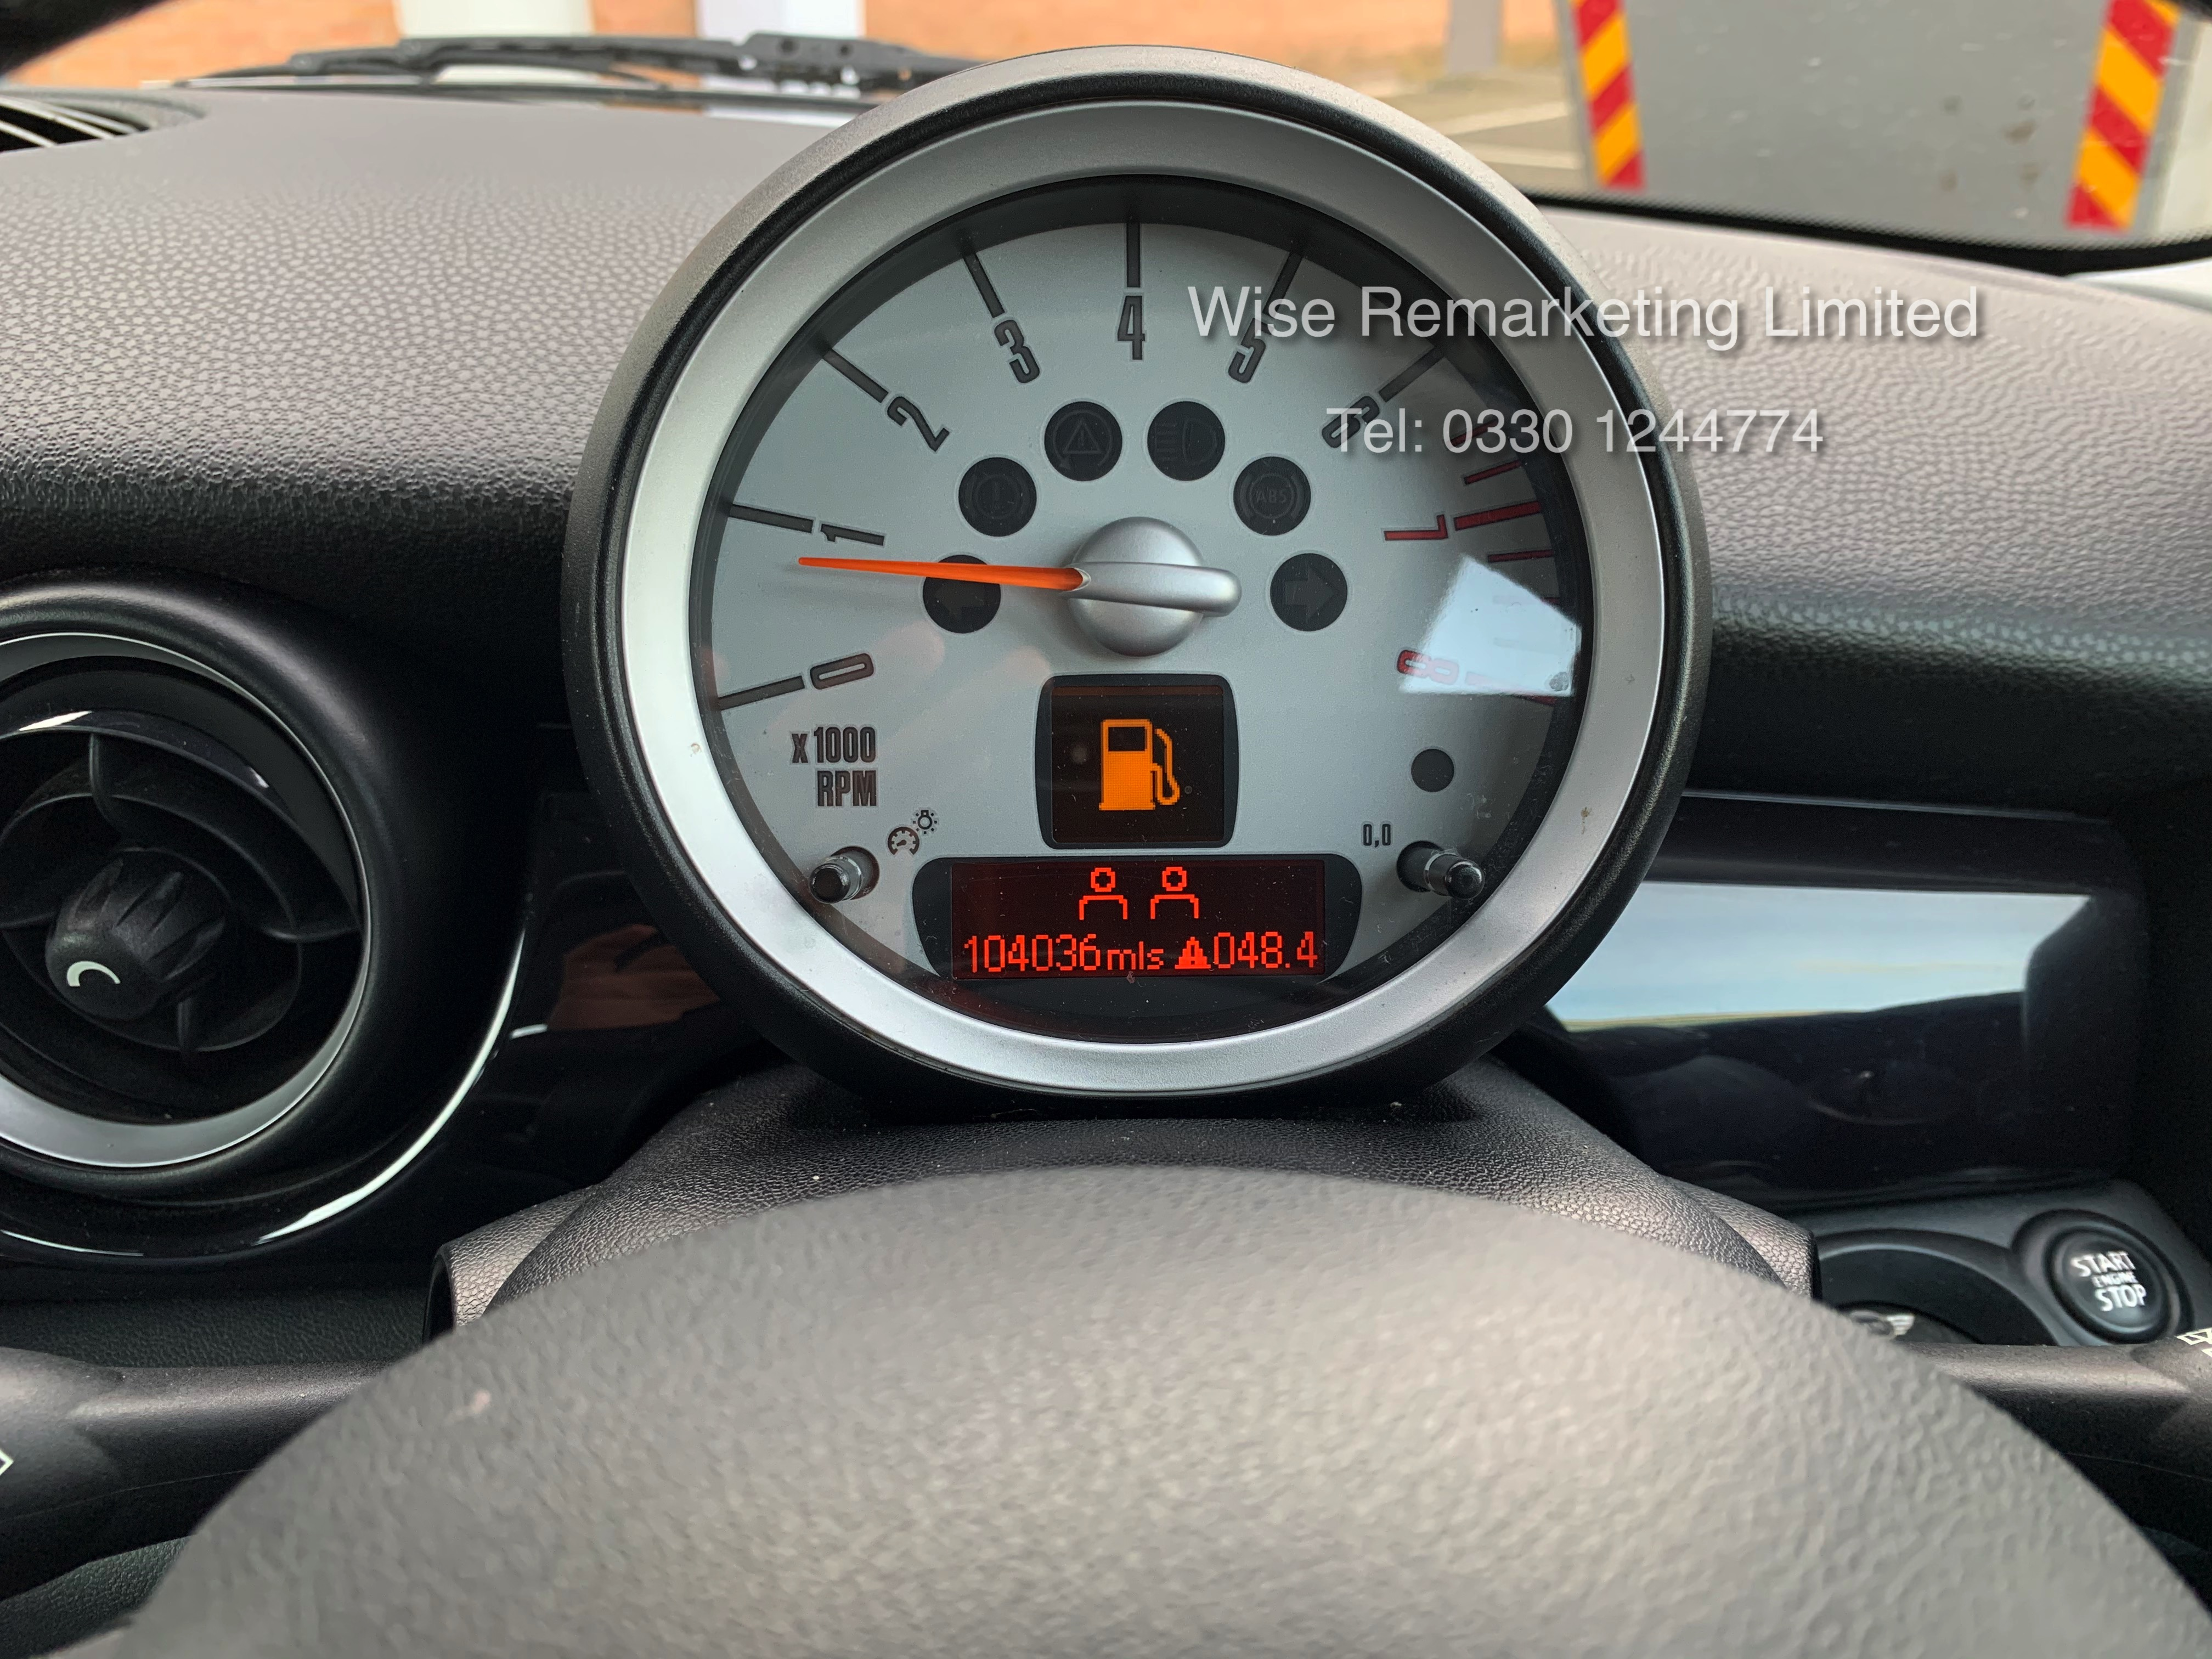 (RESERVE MET) Mini One Graphite 1.4 Petrol - 2010 Model - Service History - 6 Speed - Air Con - - Image 18 of 19